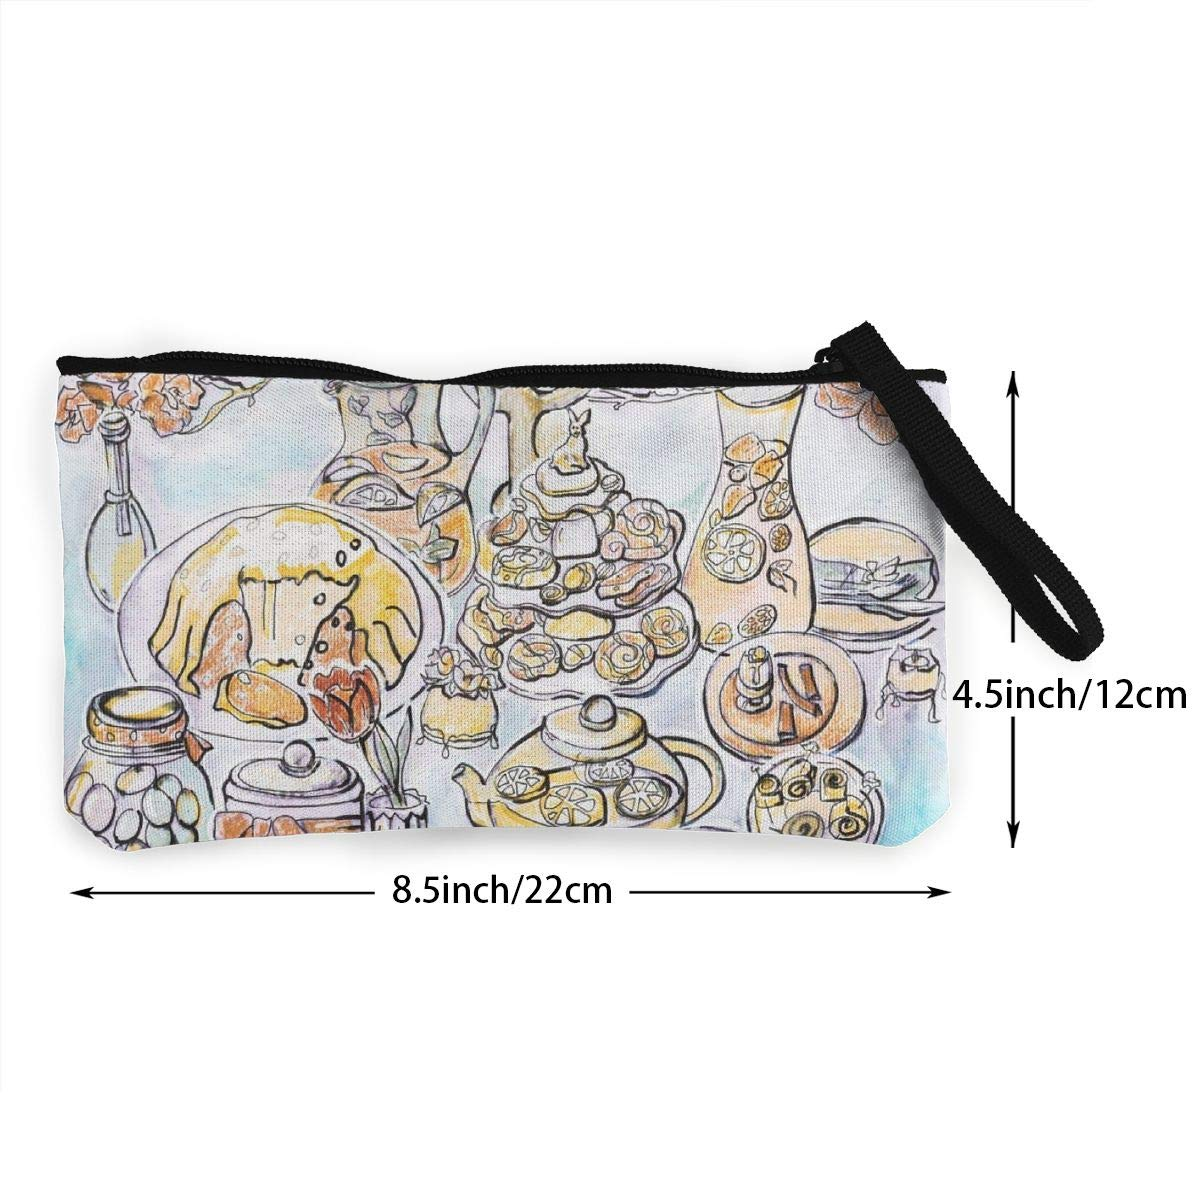 Cellphone Bag With Handle Make Up Bag DH14hjsdDEE Spring Easter Party zipper canvas coin purse wallet